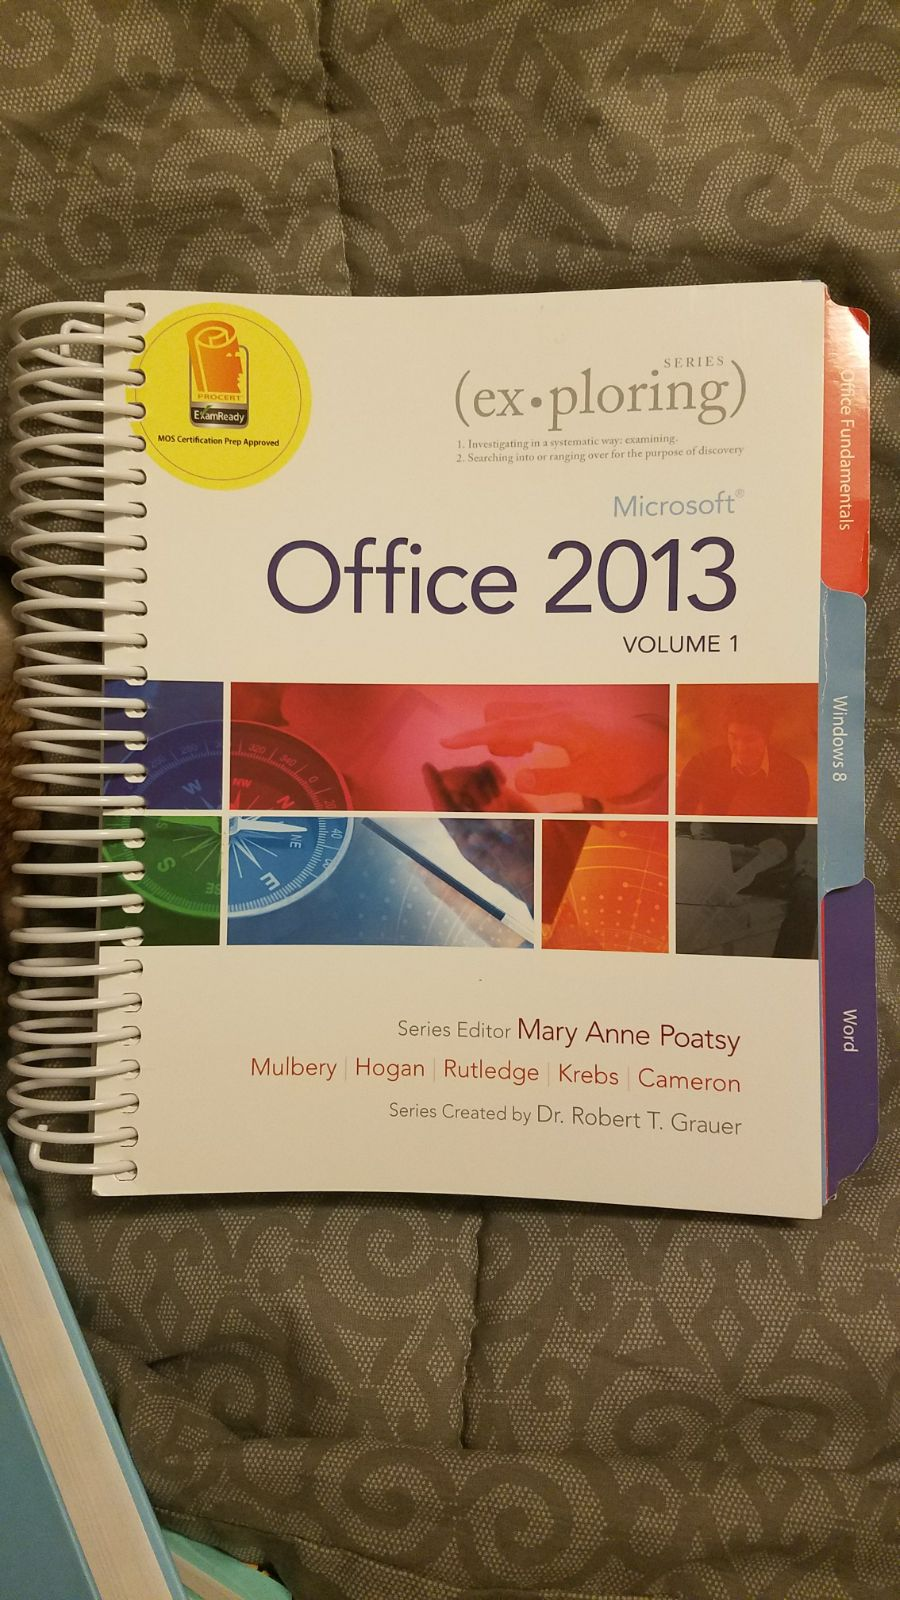 Microsoft office 2013 text book mercari buy sell things you love microsoft office 2013 text book xflitez Image collections